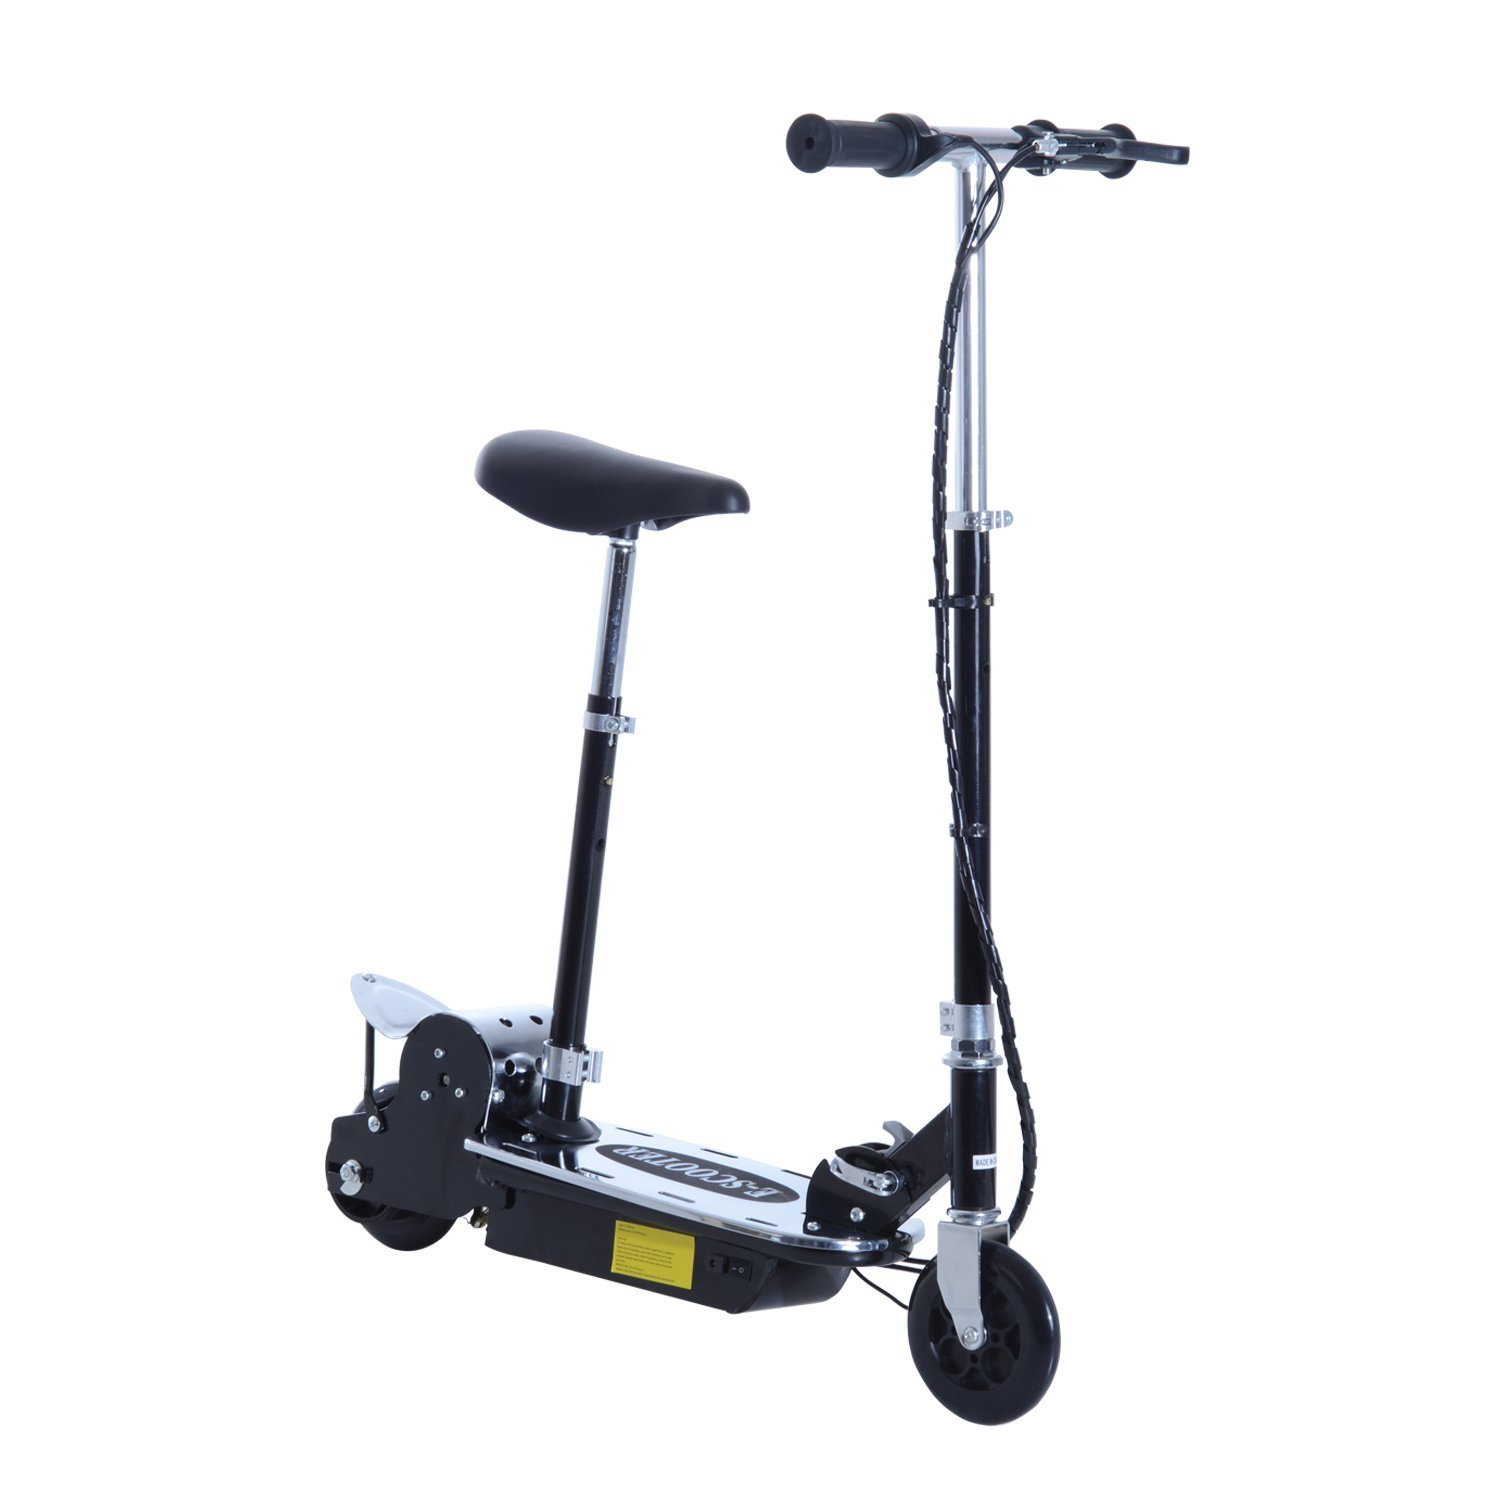 Patinete-Electrico-Scooter-Plegable-con-Asiento-Ajustable-Carga-70Kg-4-Colores